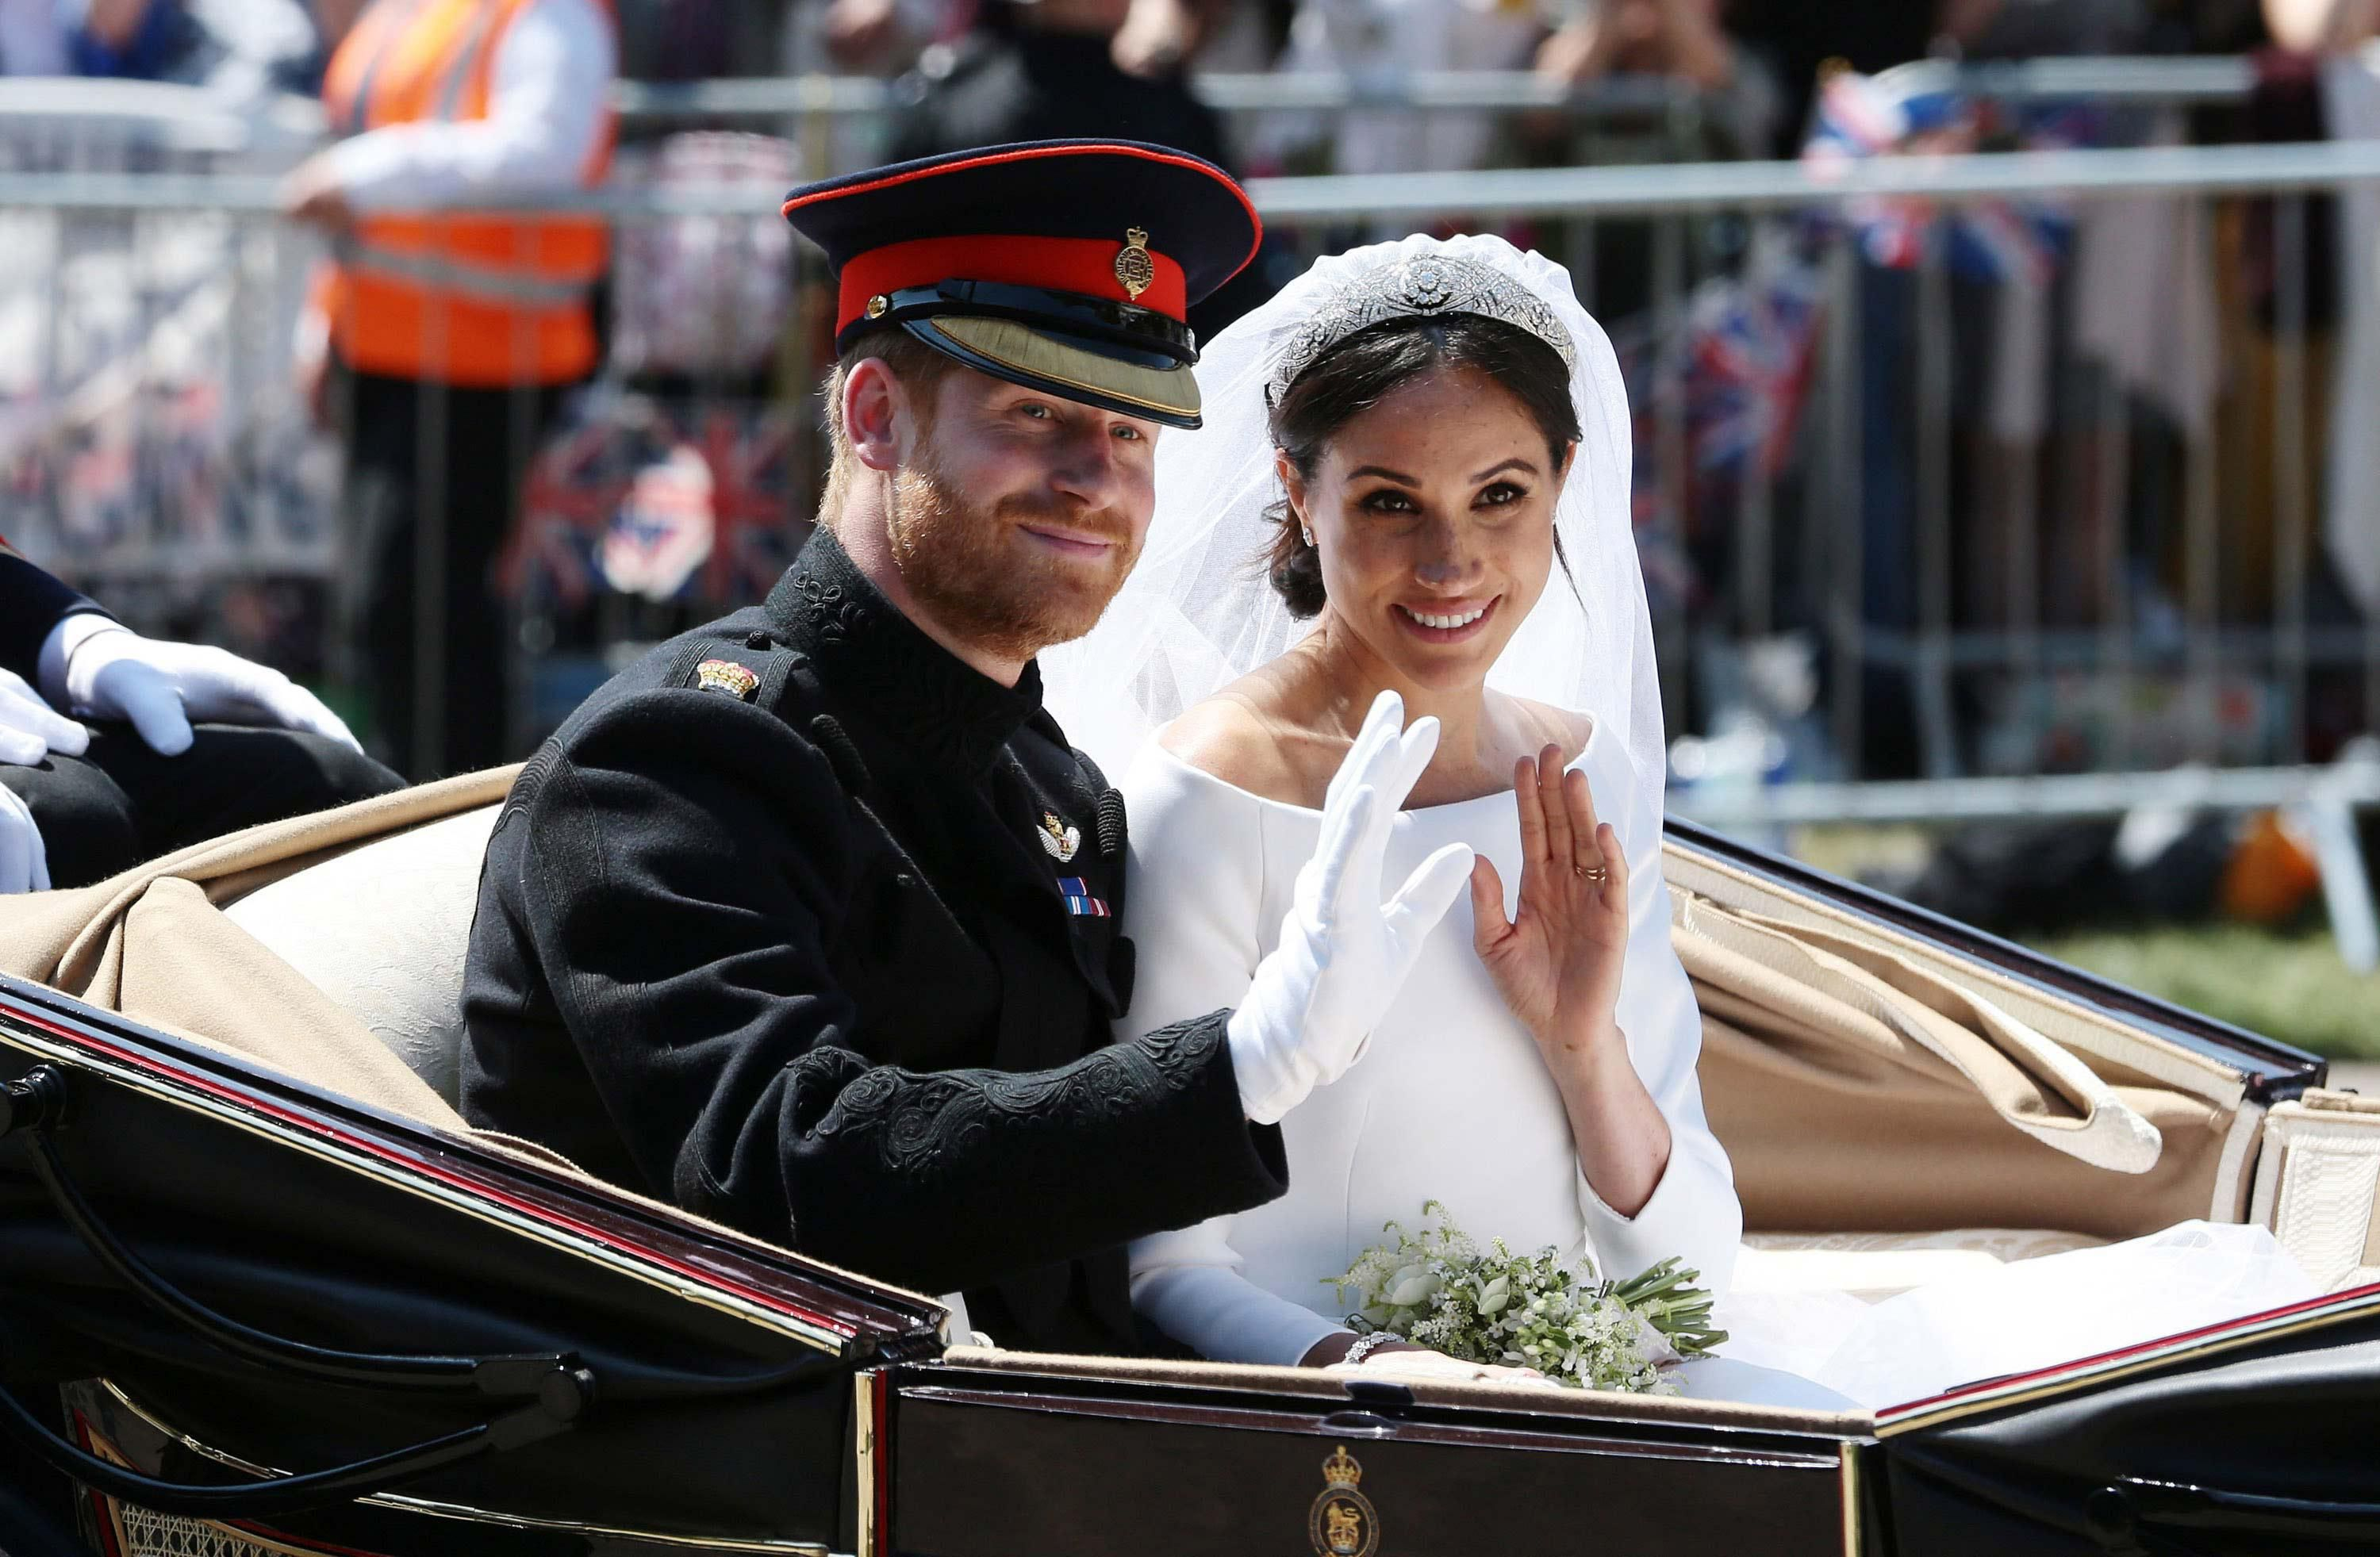 \u200bHarry and Meghan pose for a photo in an open-top carriage at their wedding